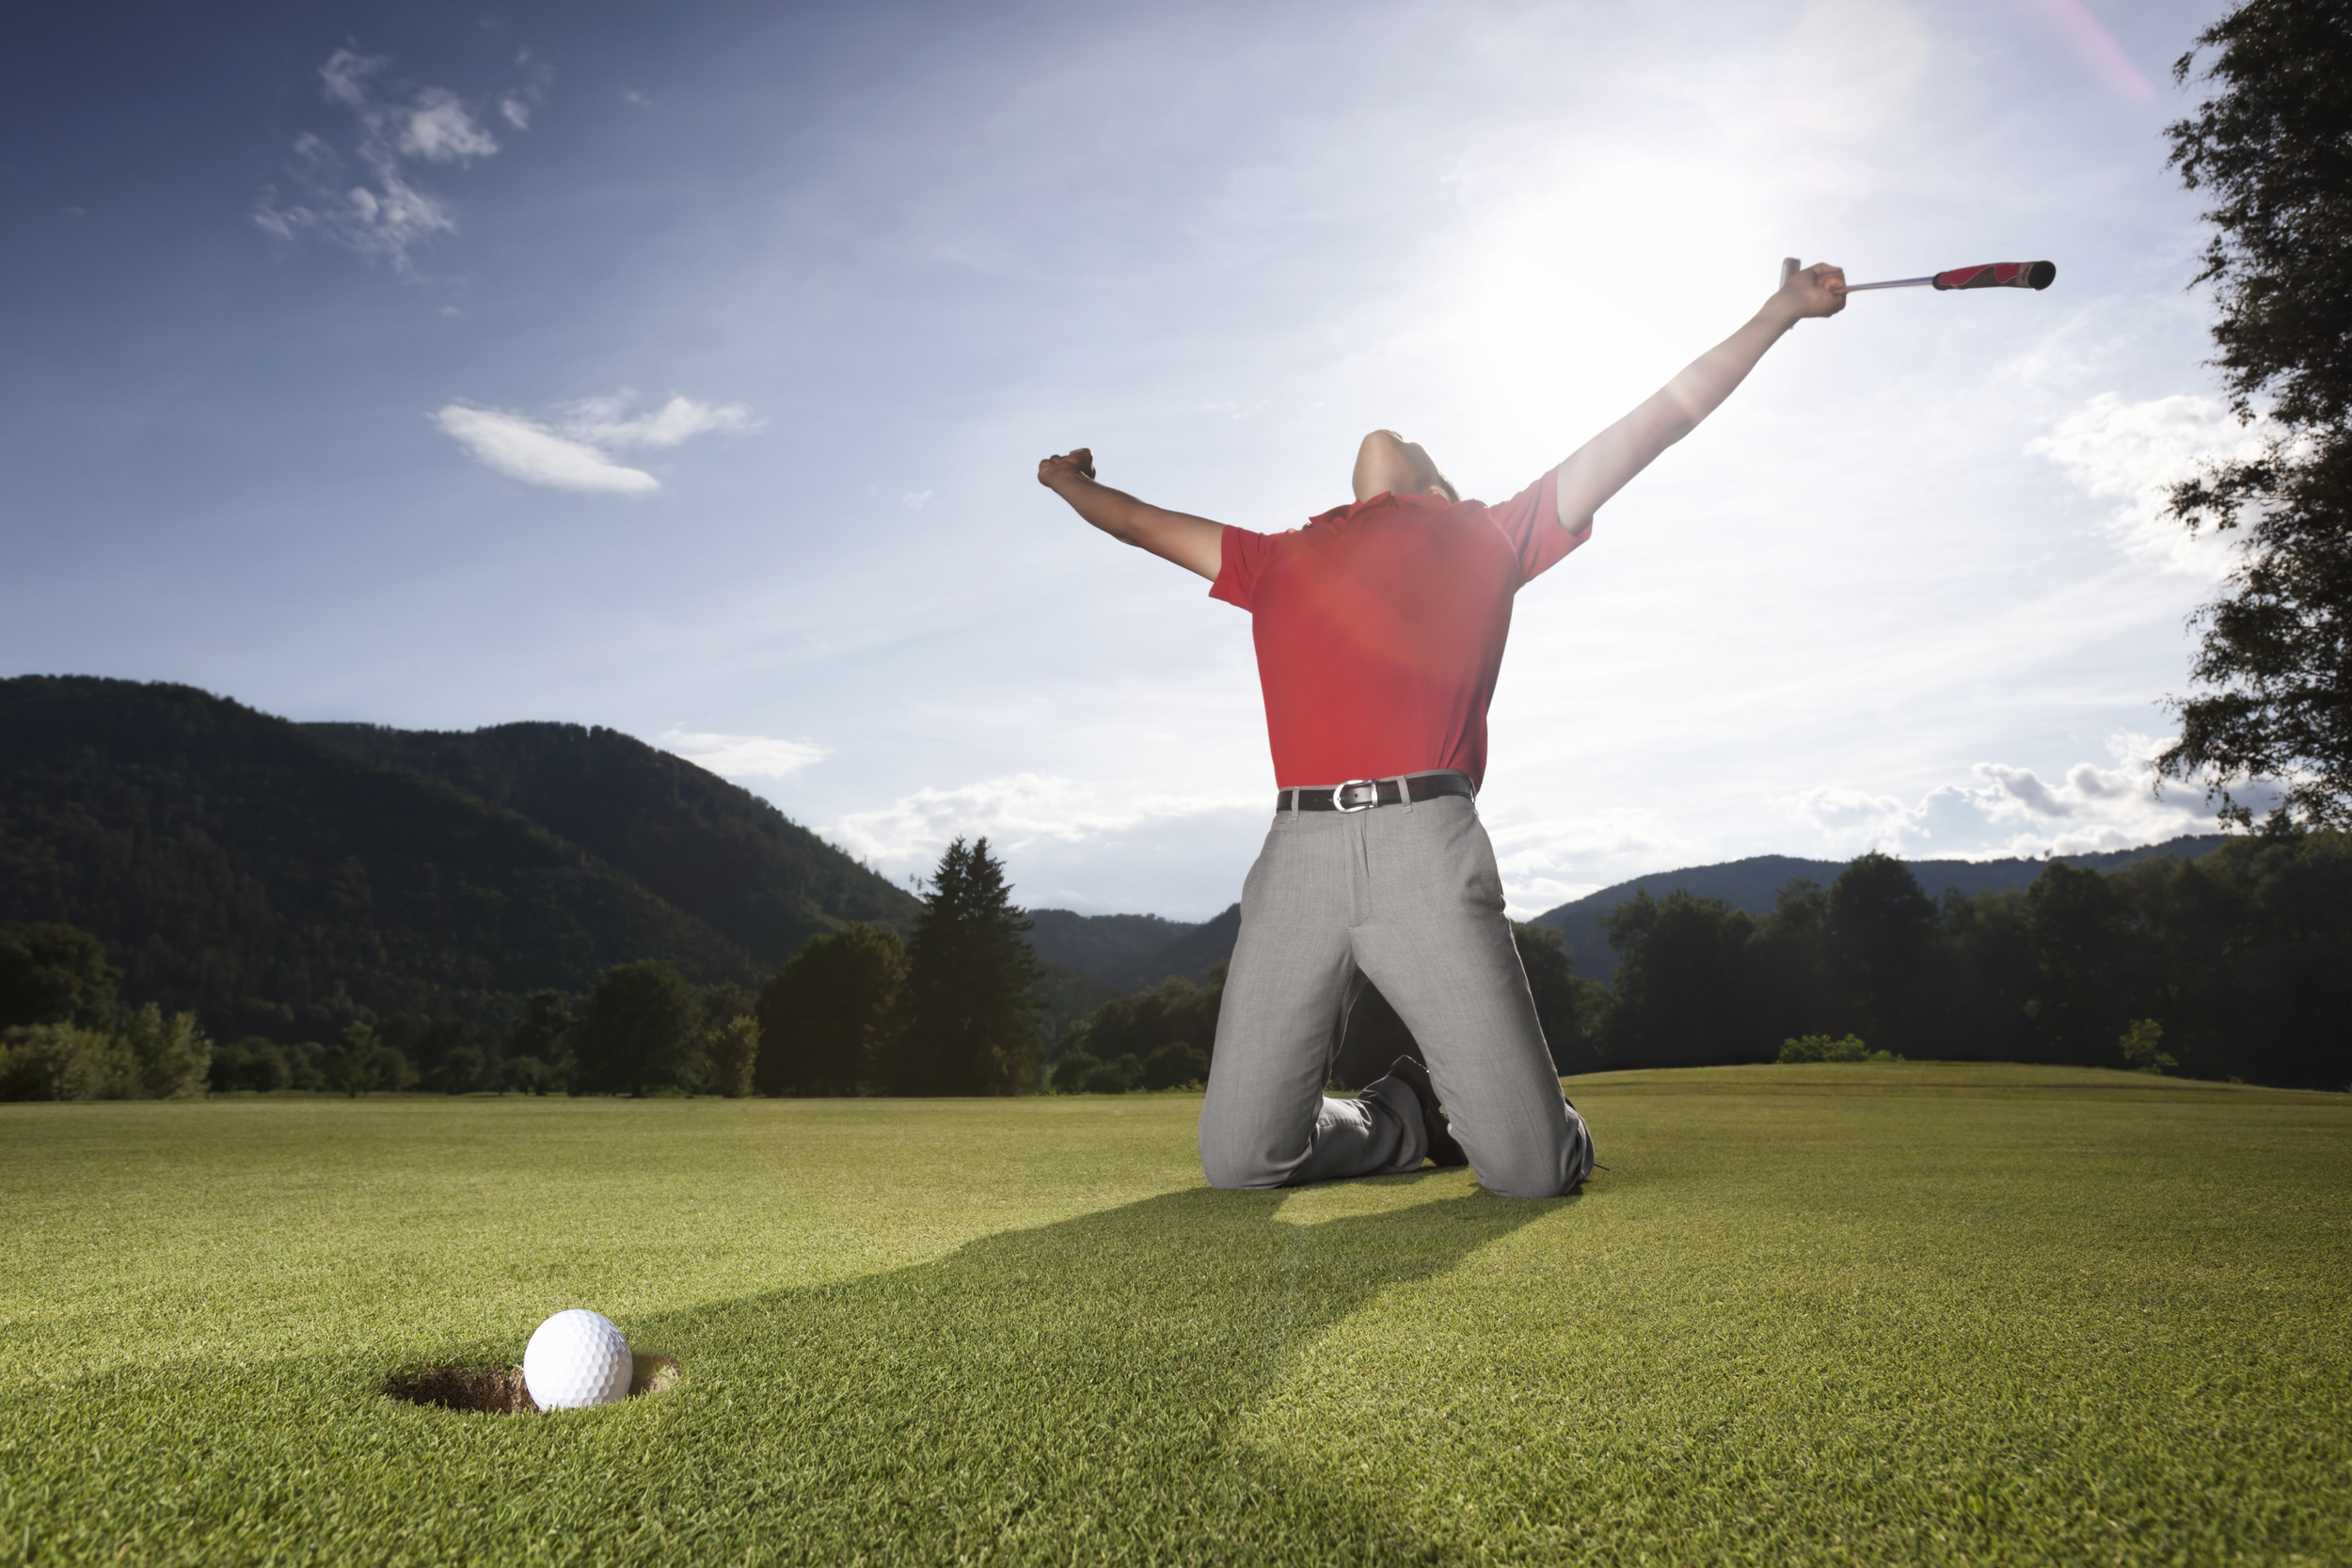 Hole more putts with Limitless golf based in Chesham and Amersham